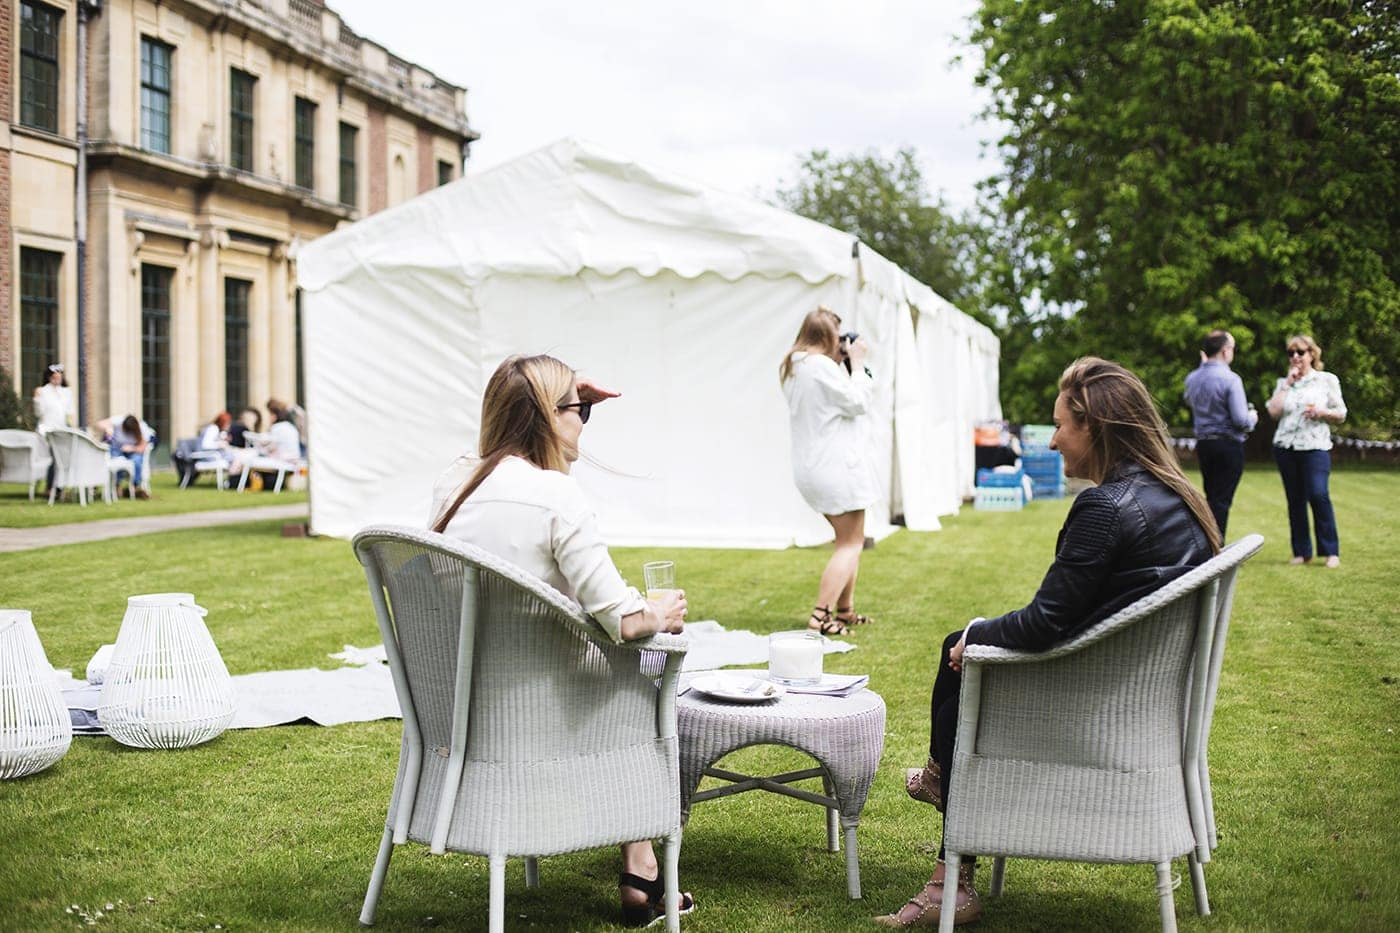 Jo Malone summer garden party | Eltham palace garden party